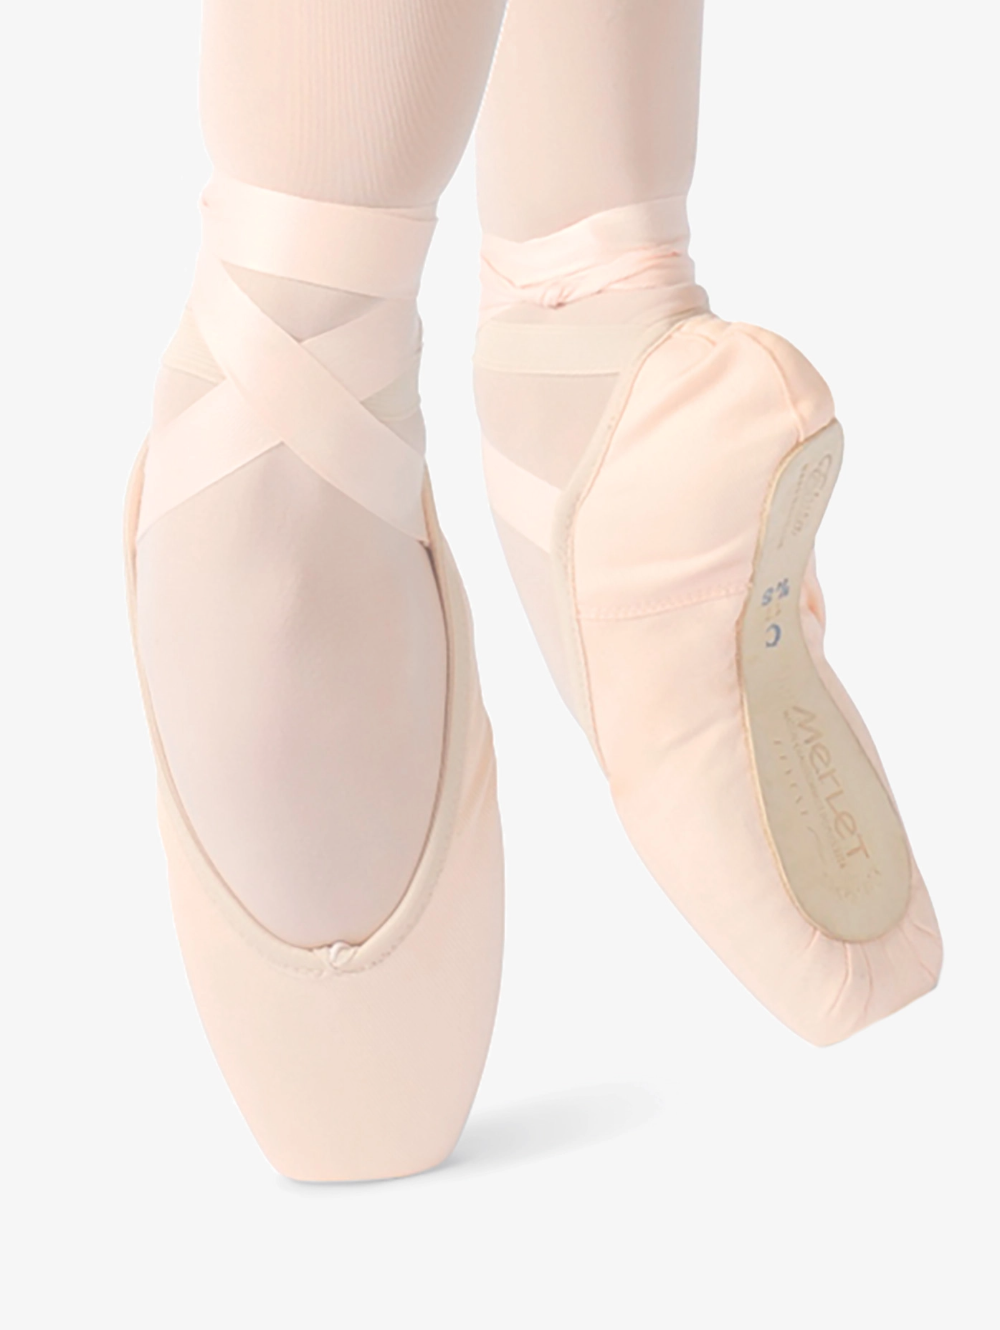 Womens Ballet Pointe Shoes Pointe Shoes Dance Pointe Shoes